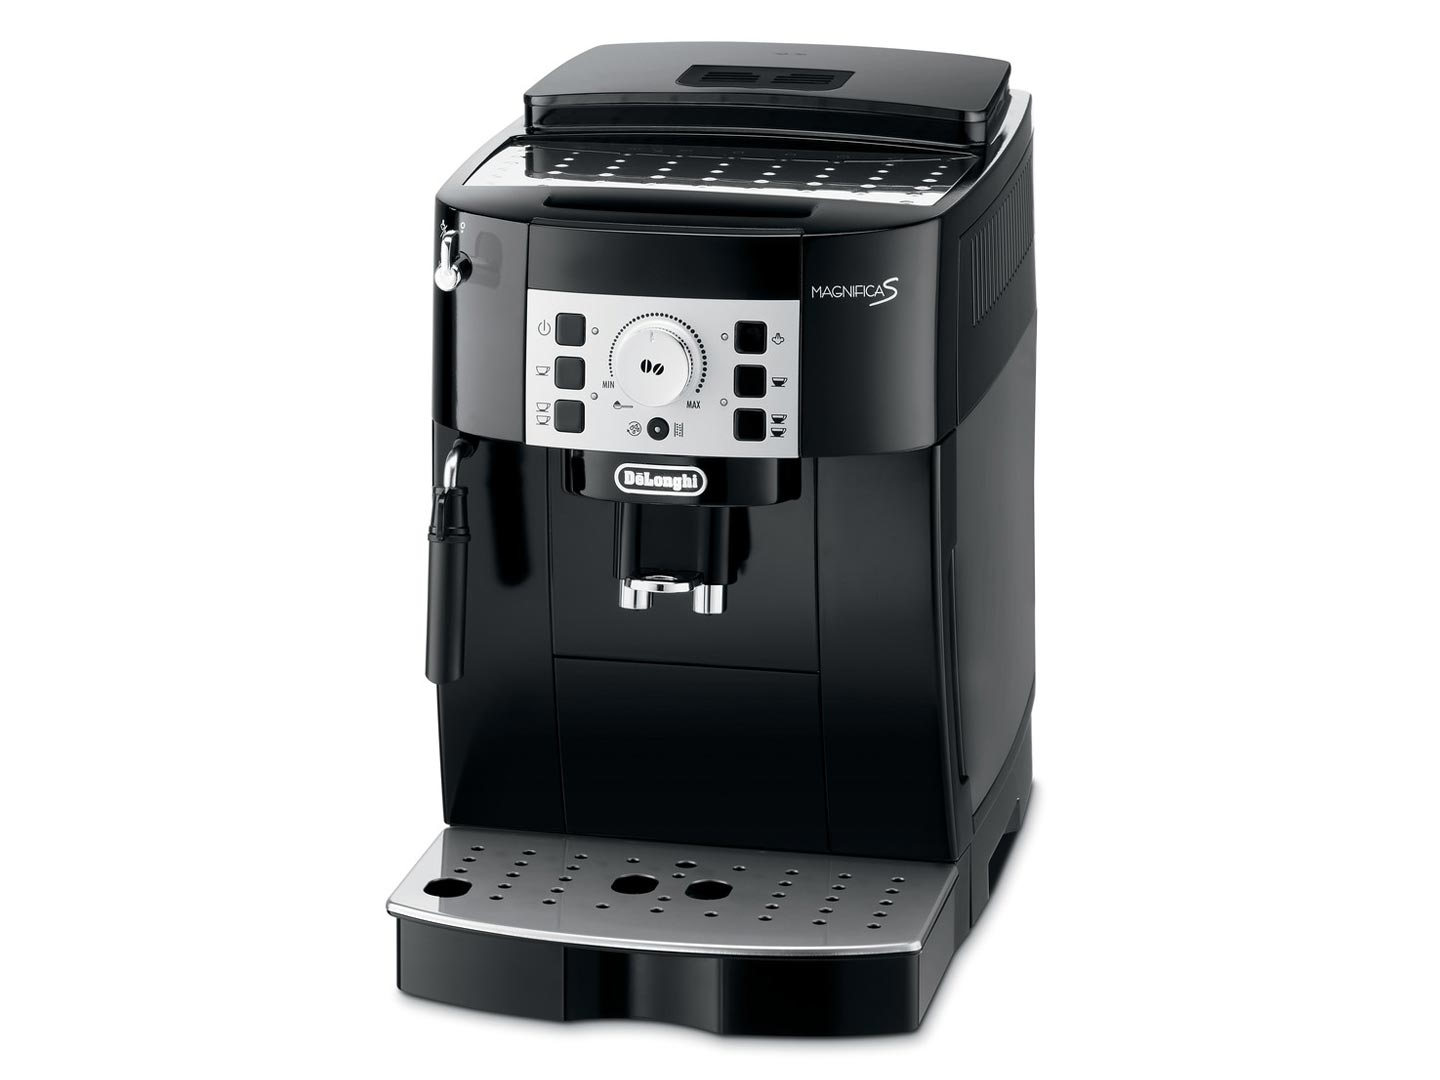 http://www.delonghi.com/Global/Products/Images/Coffee-Makers/Bean-To-Cup/Magnifica-S-Ecam-22110B/759278557.png